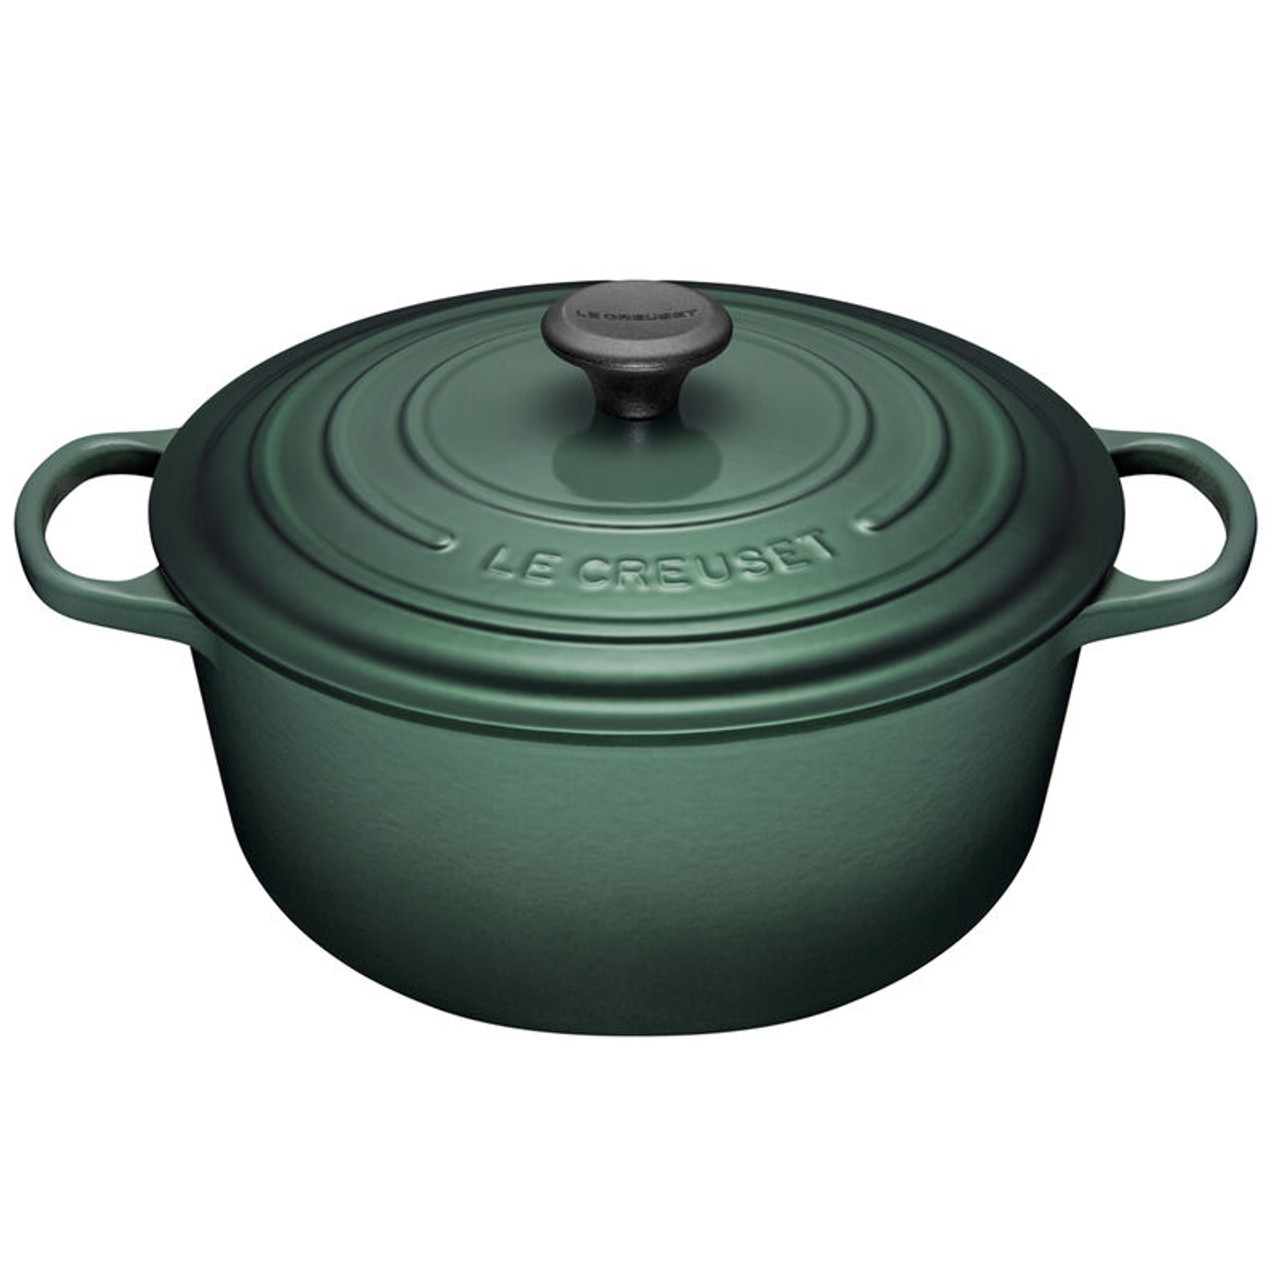 LE CREUSET ROUND FRENCH OVEN 6.7L